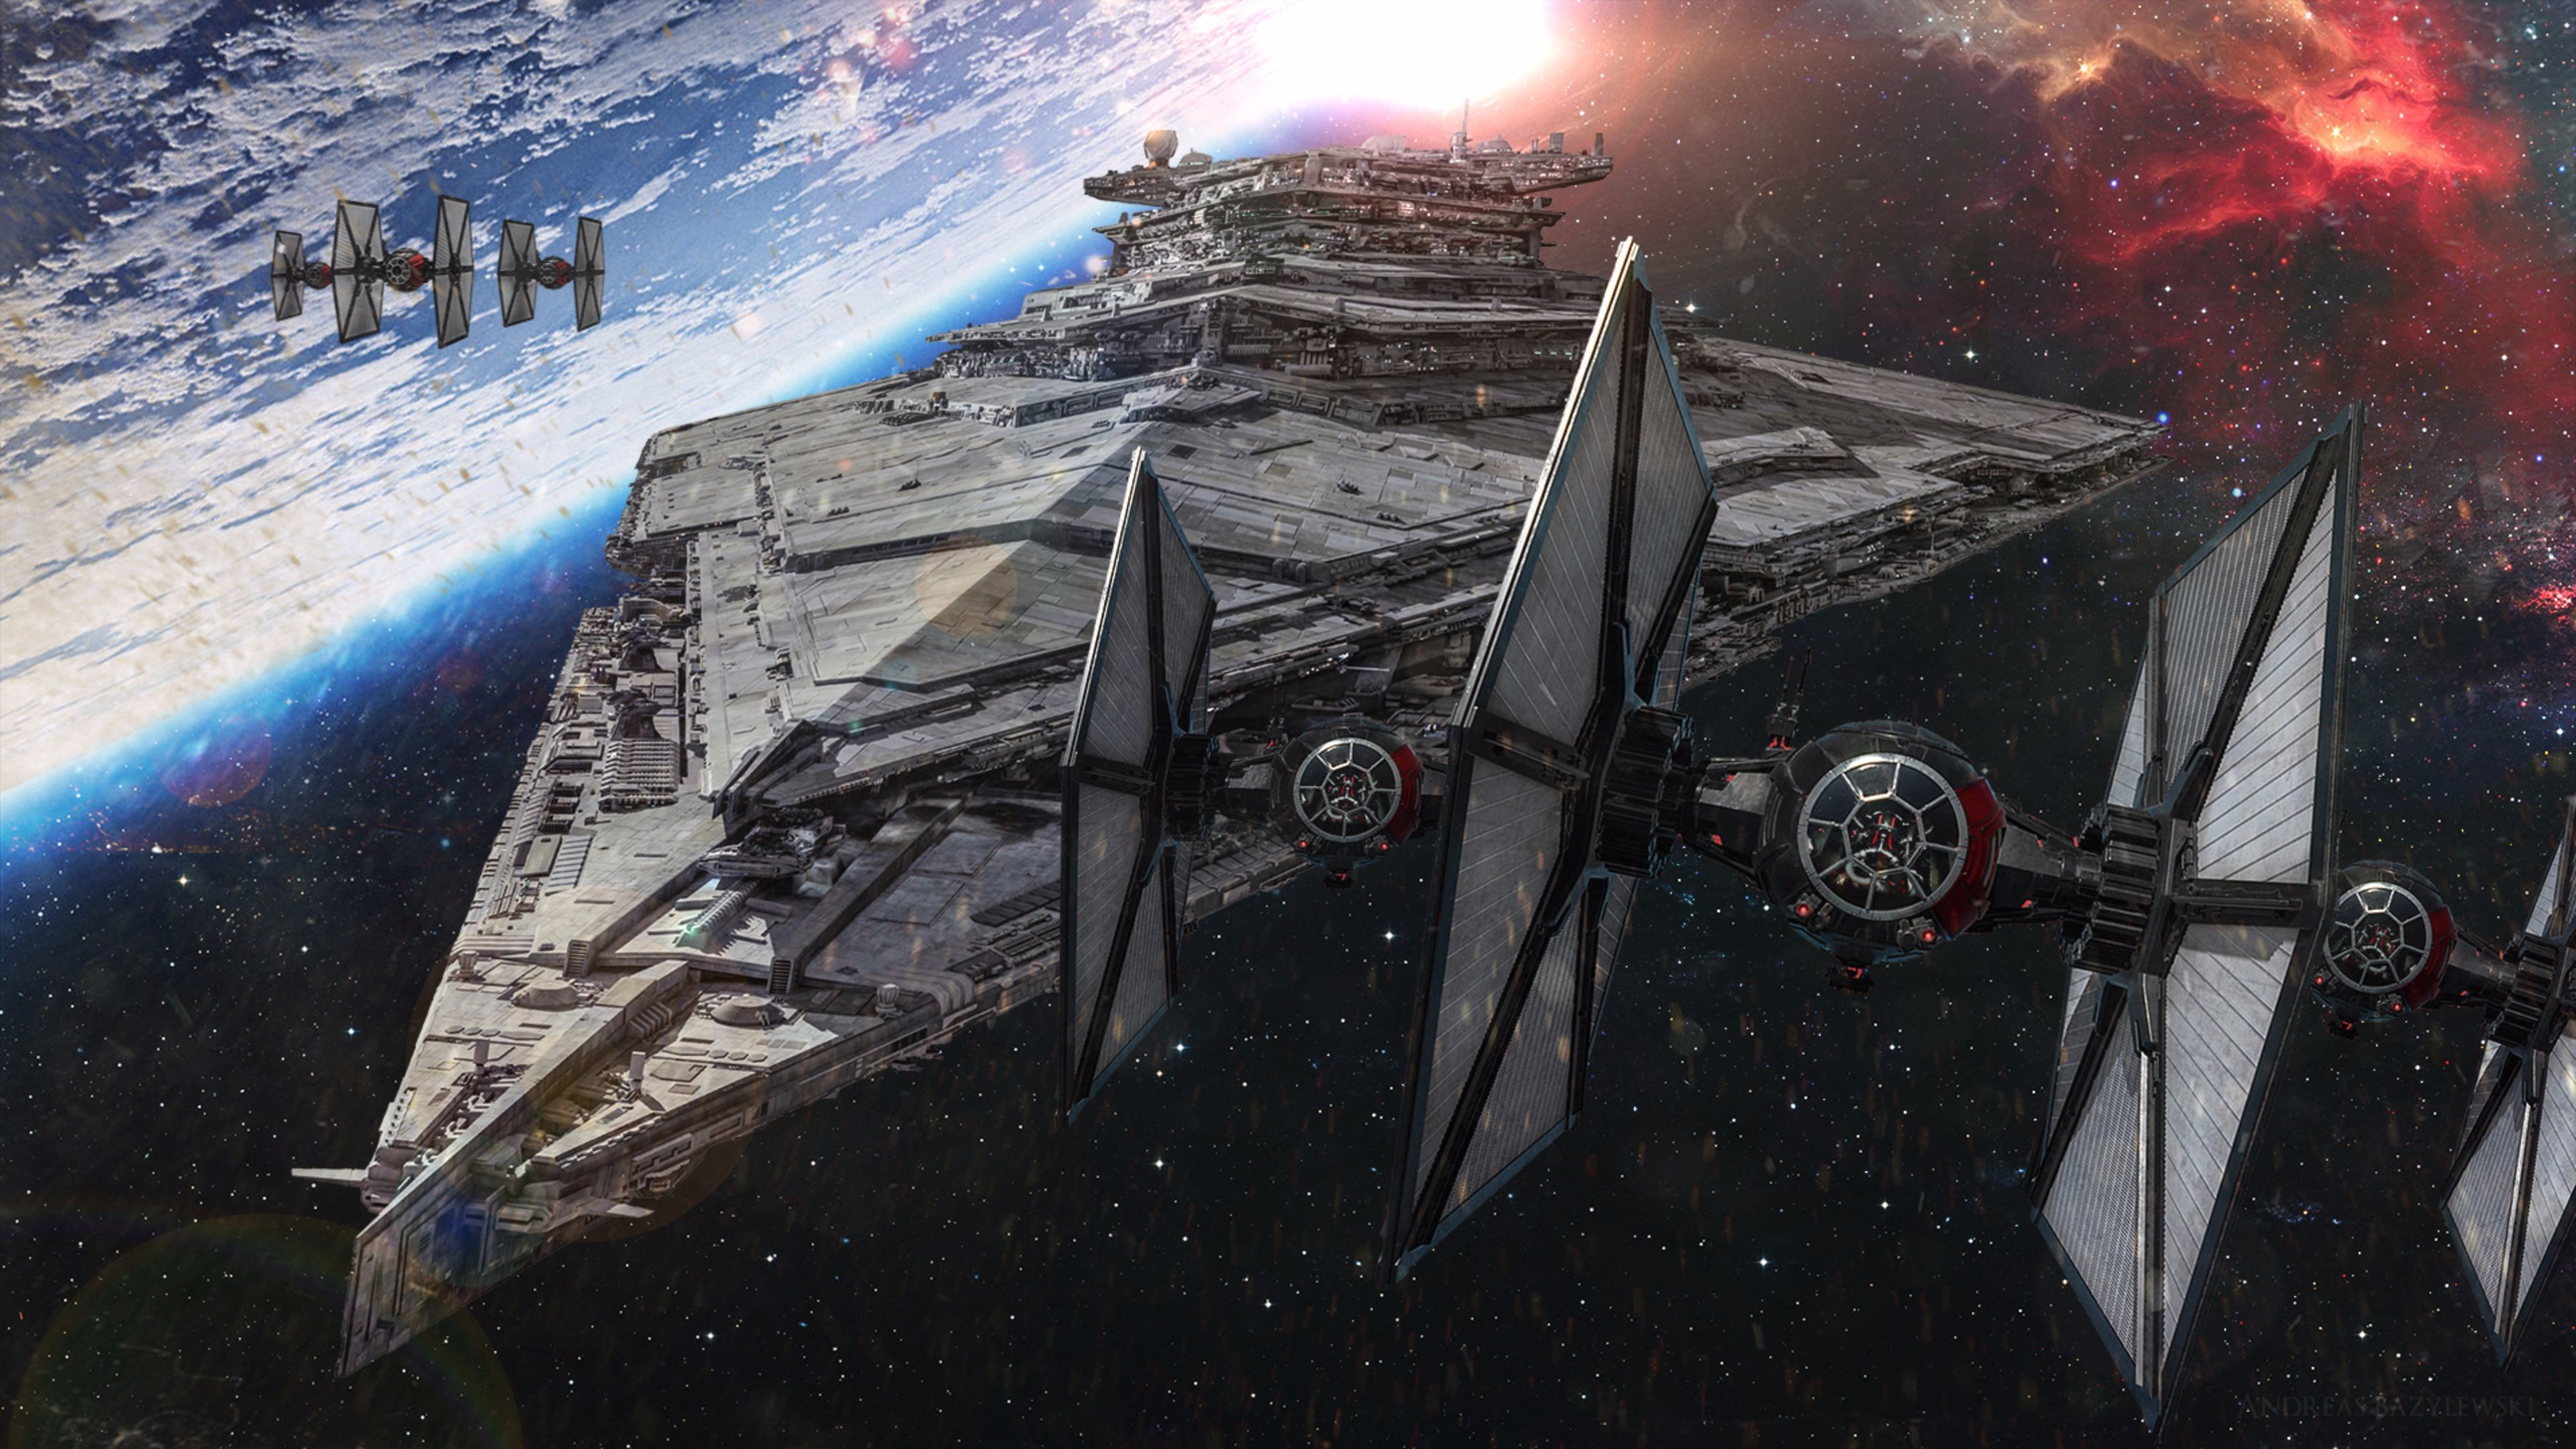 Star Wars Wallpaper 70 Pictures